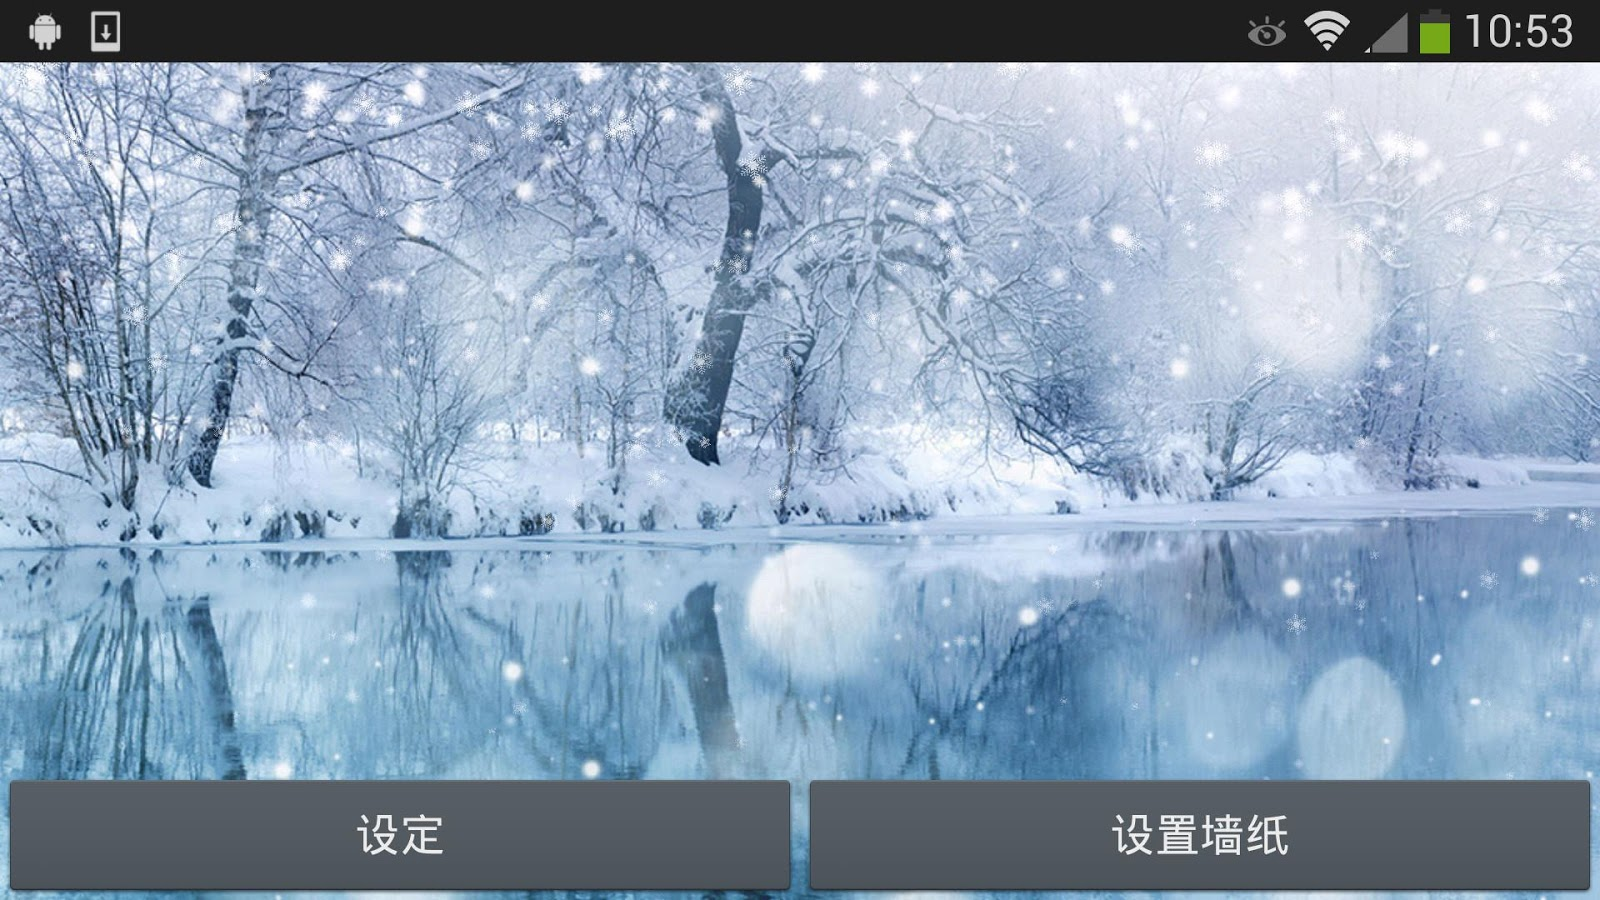 snowing live wallpaper for pc